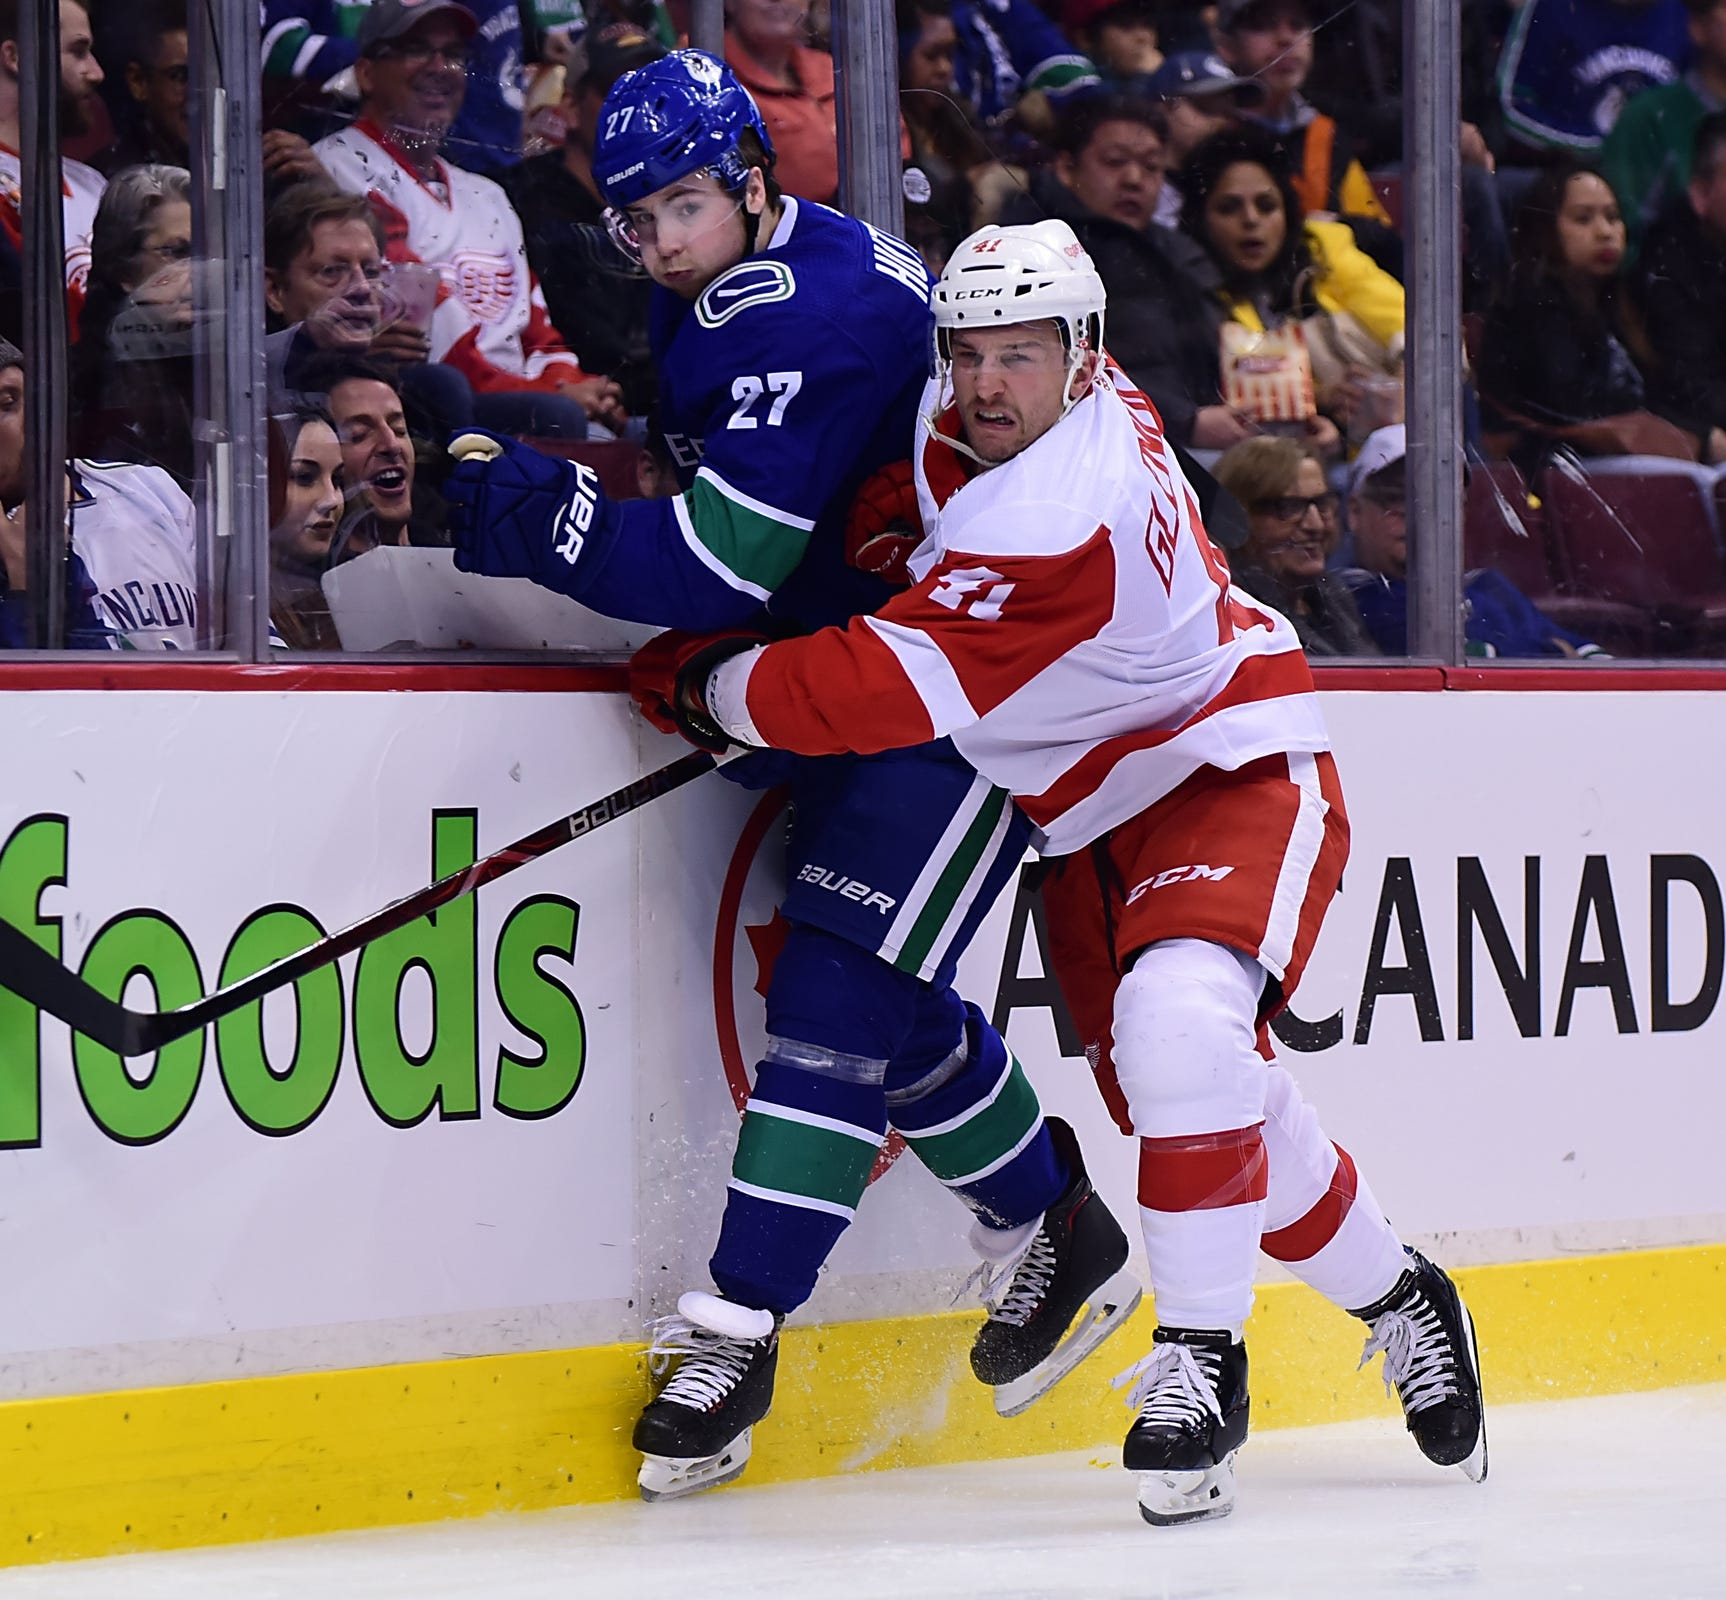 Red Wings forward Luke Glendening boards Canucks defenseman Ben Hutton during the second period on Sunday, Jan. 20, 2019, in Vancouver, British Columbia.